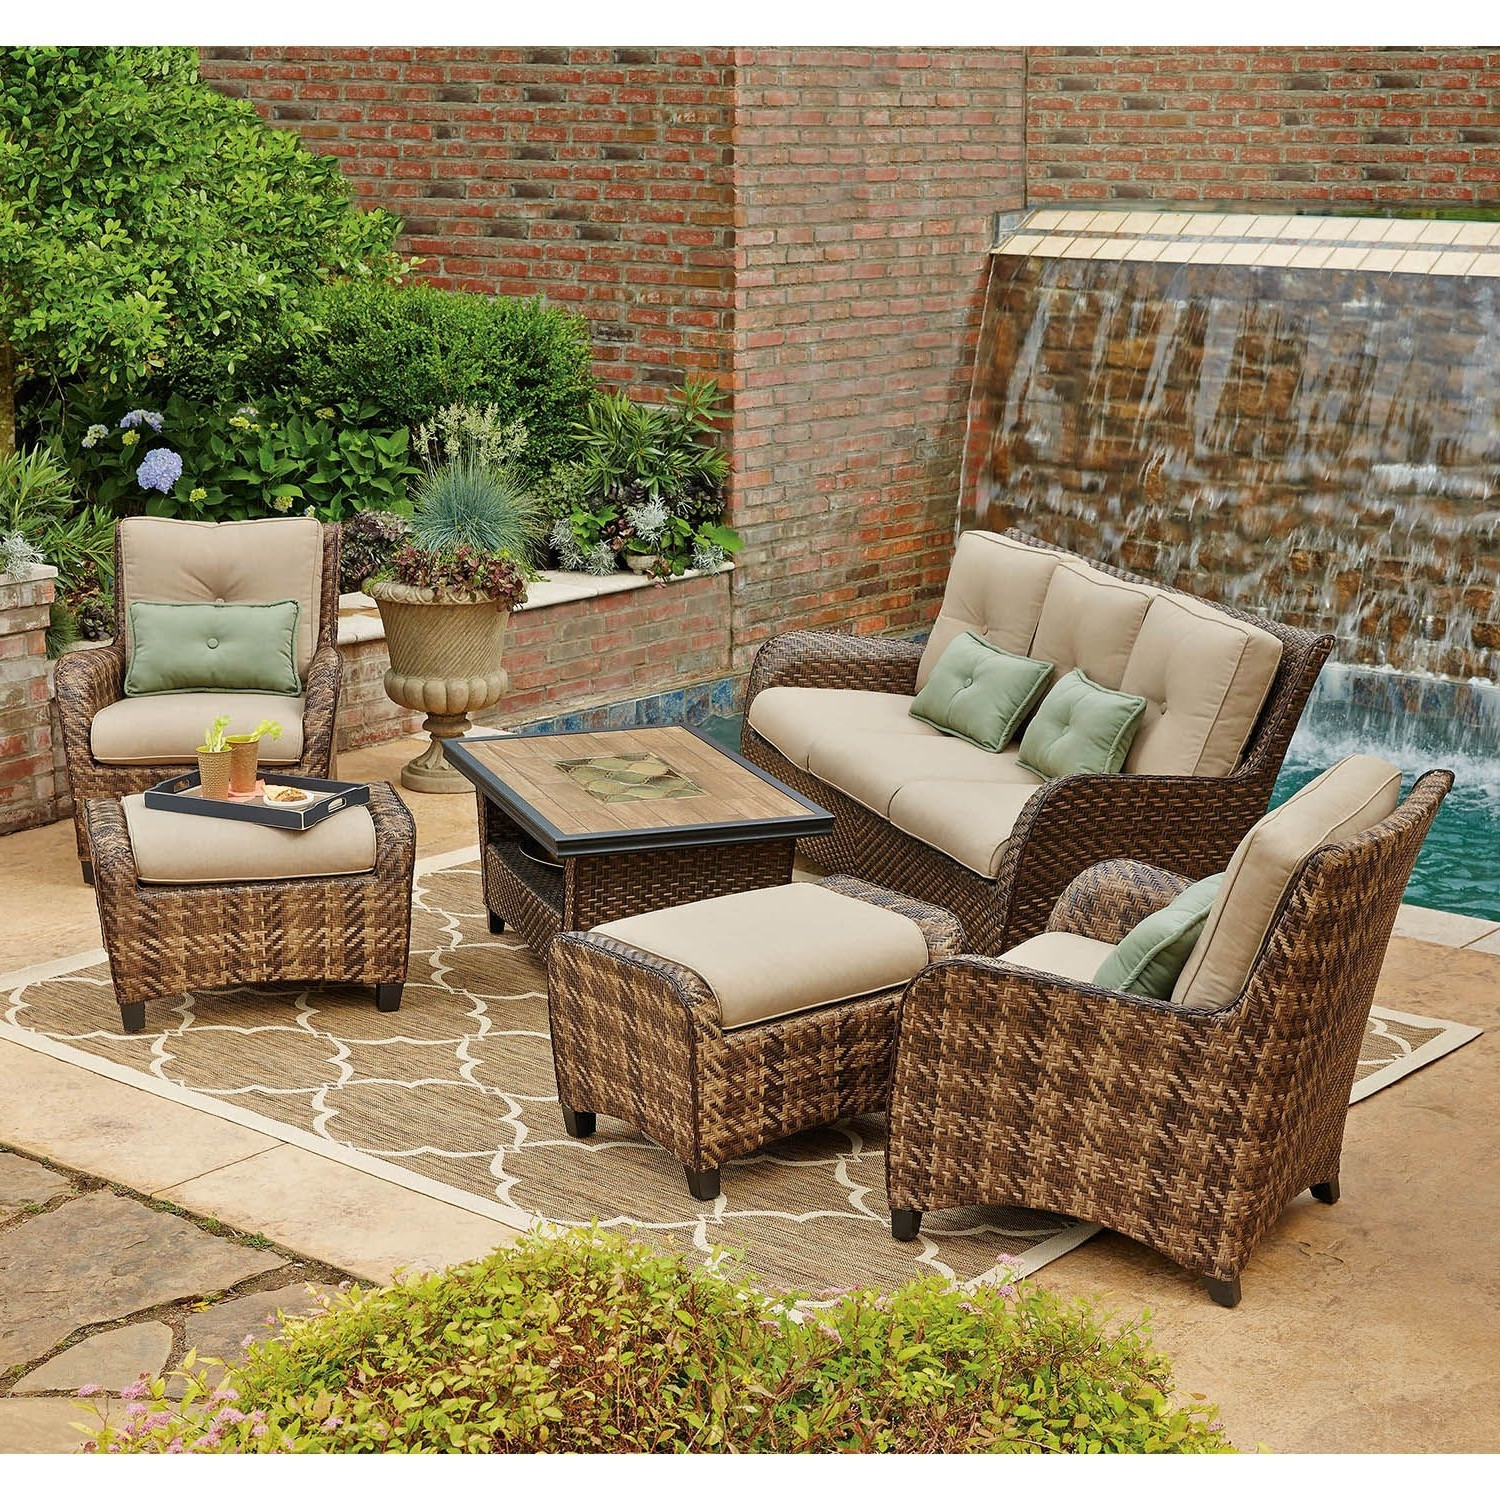 Best ideas about Sams Patio Furniture . Save or Pin Tips Eye Catching Outdoor Furniture With Sams Club Patio Now.